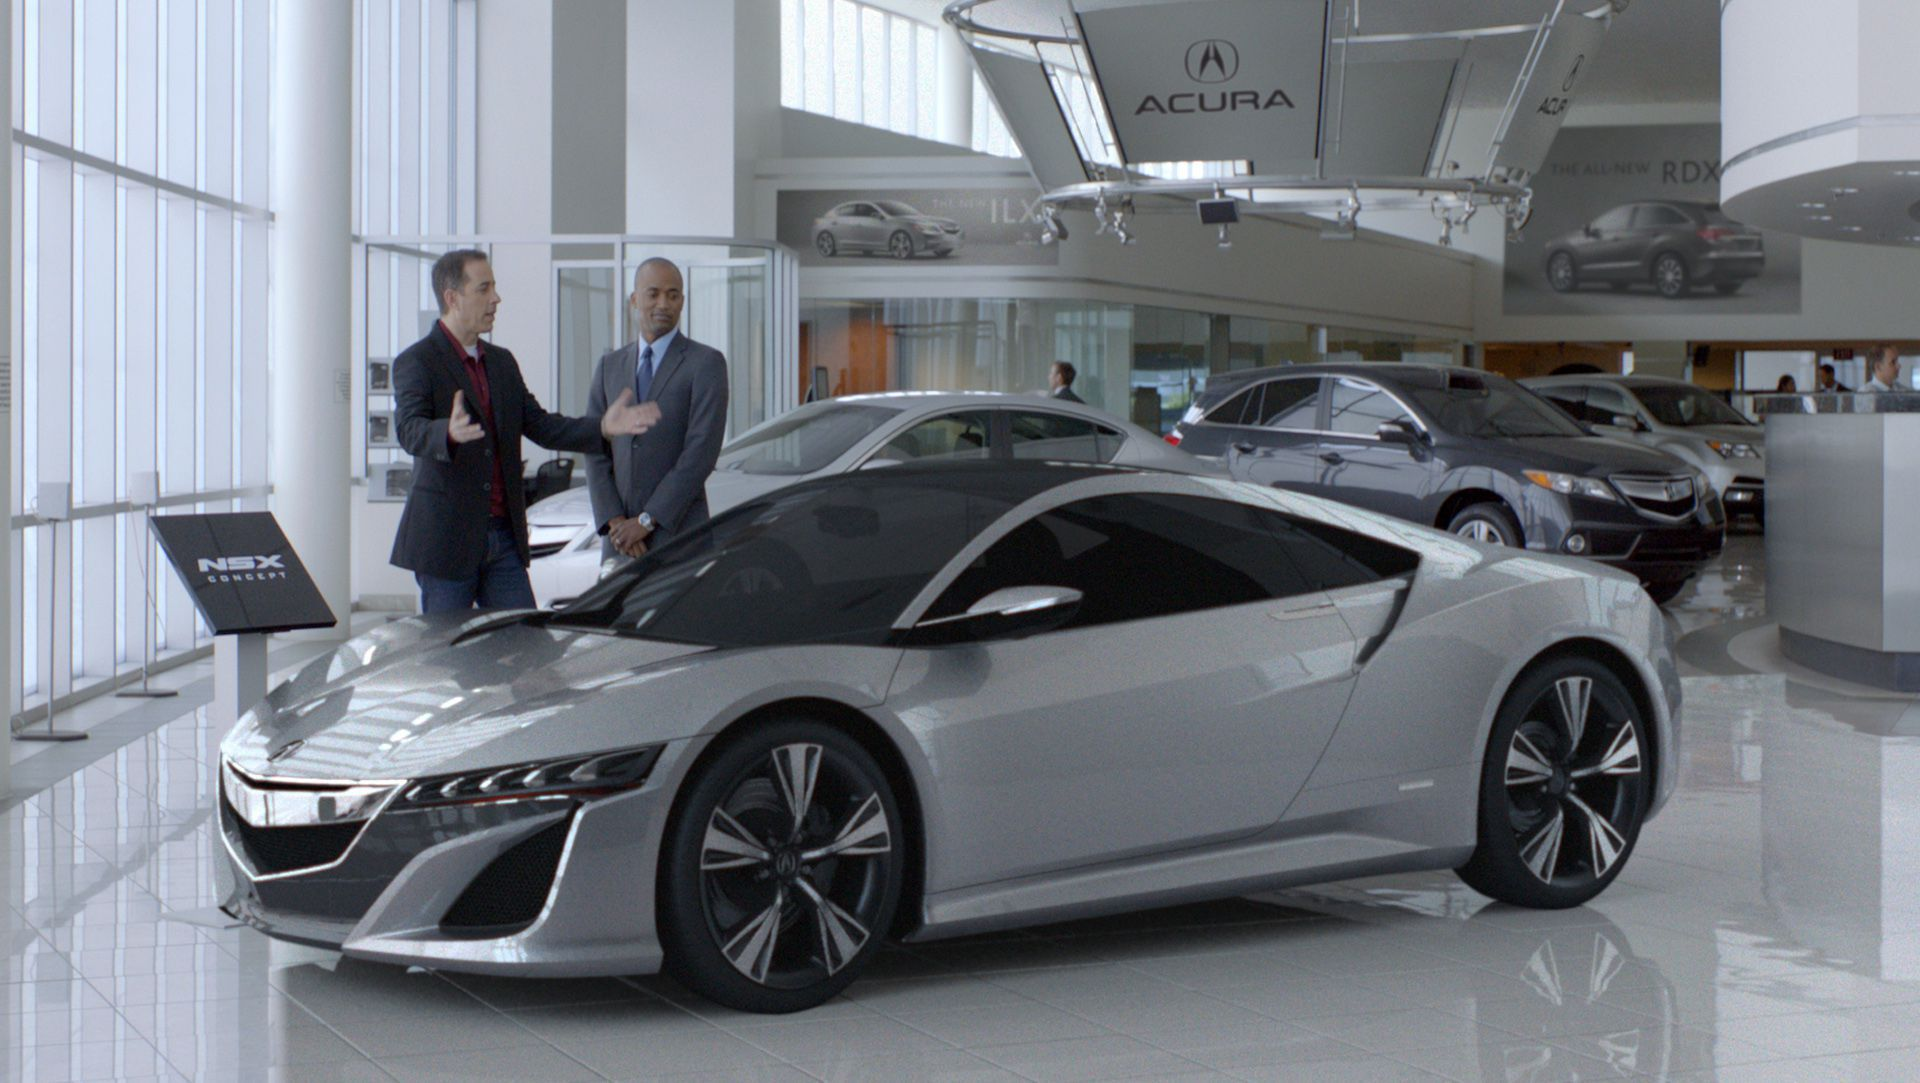 Acura to Debut Super Bowl XLVI mercial First for the Brand